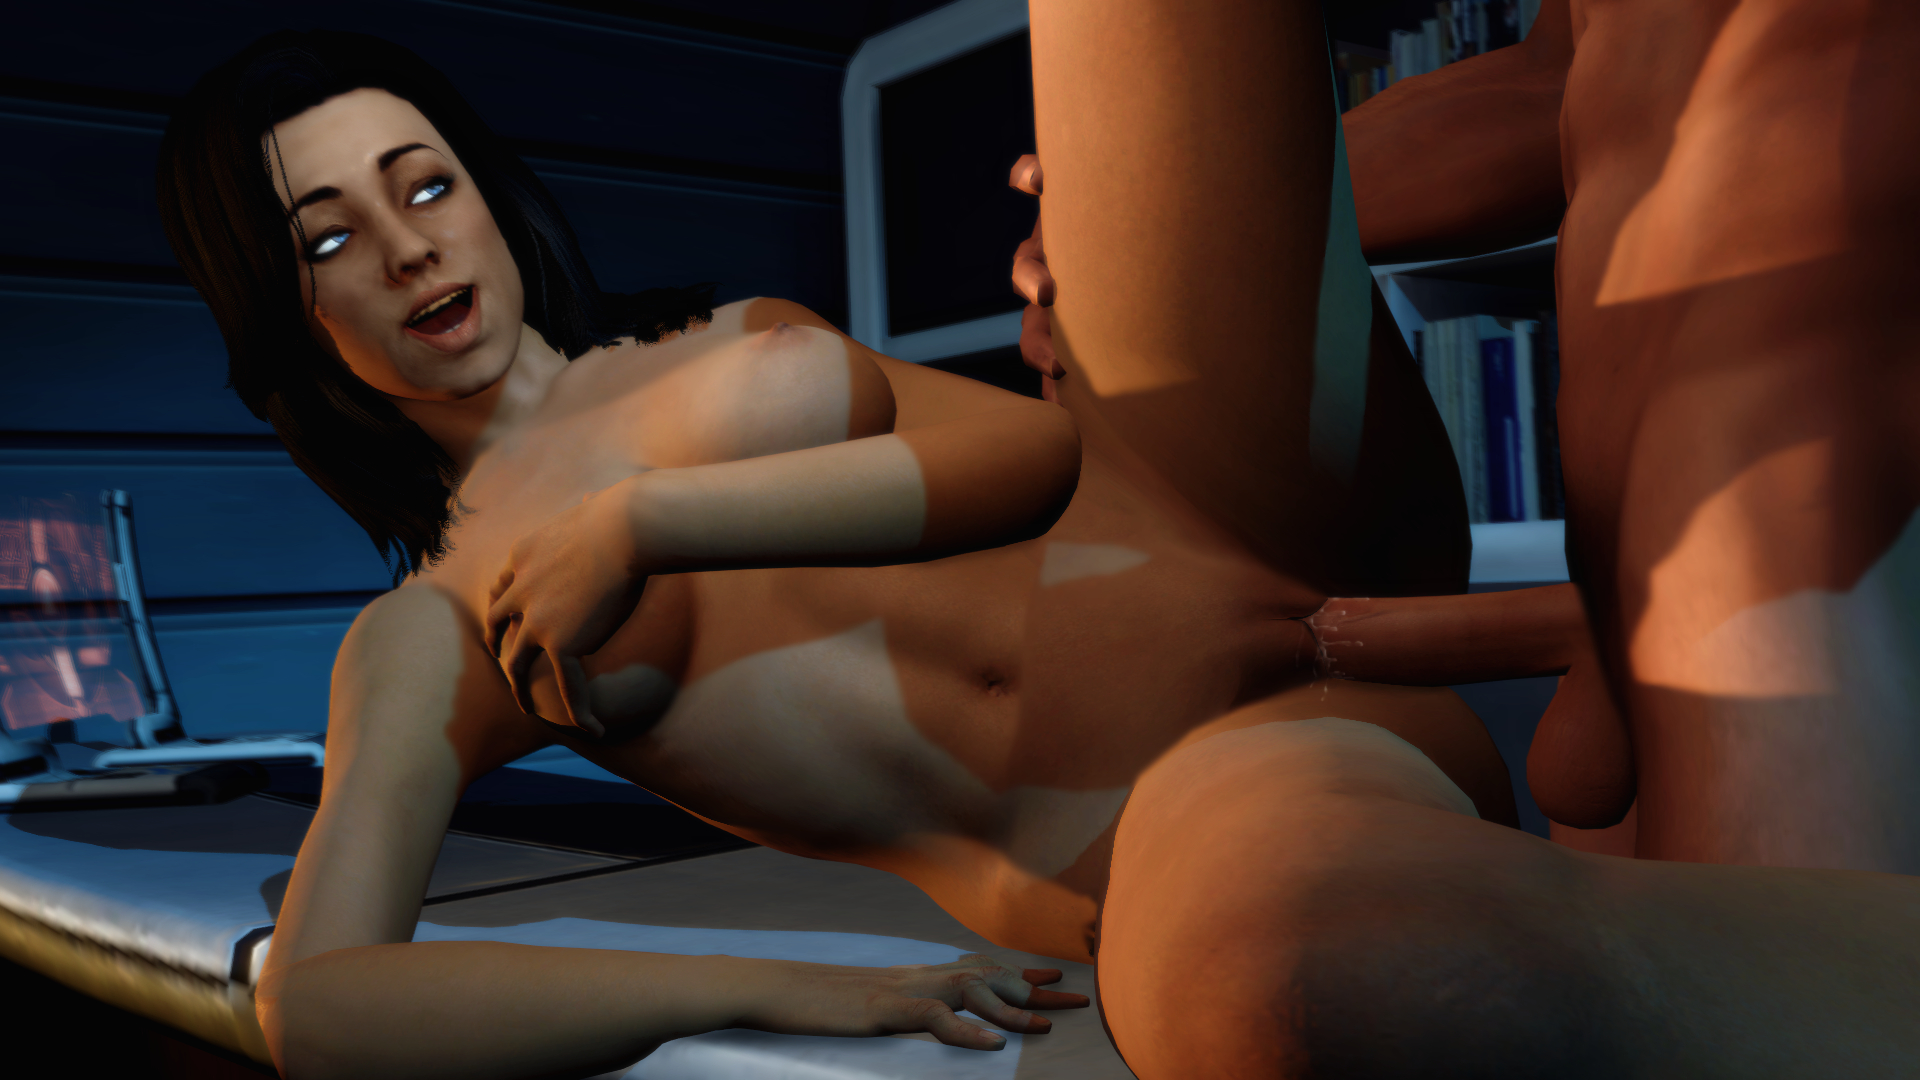 Mass effect porn mods fucks photos